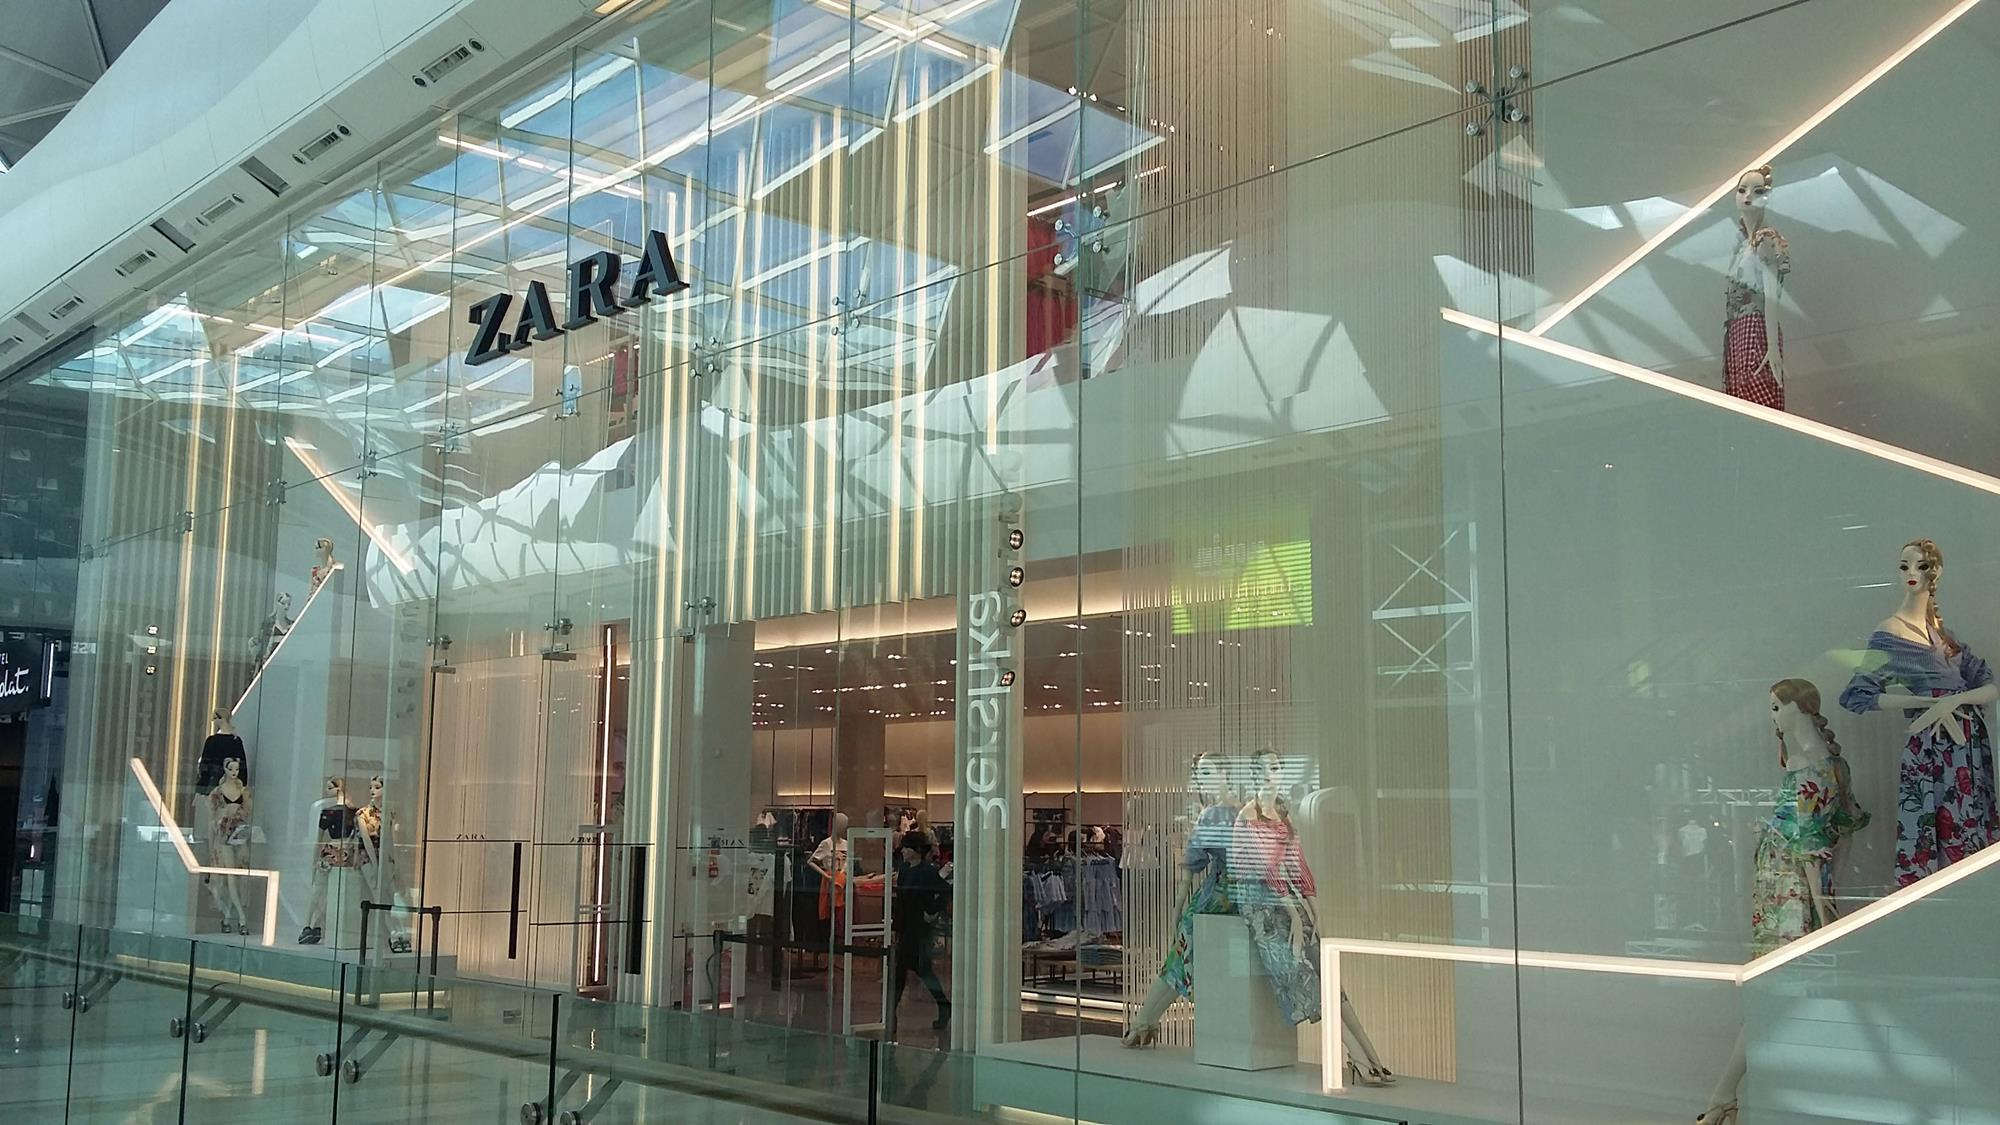 b8c71a4c Store of the week: Zara goes large in Westfield London | News | Retail Week